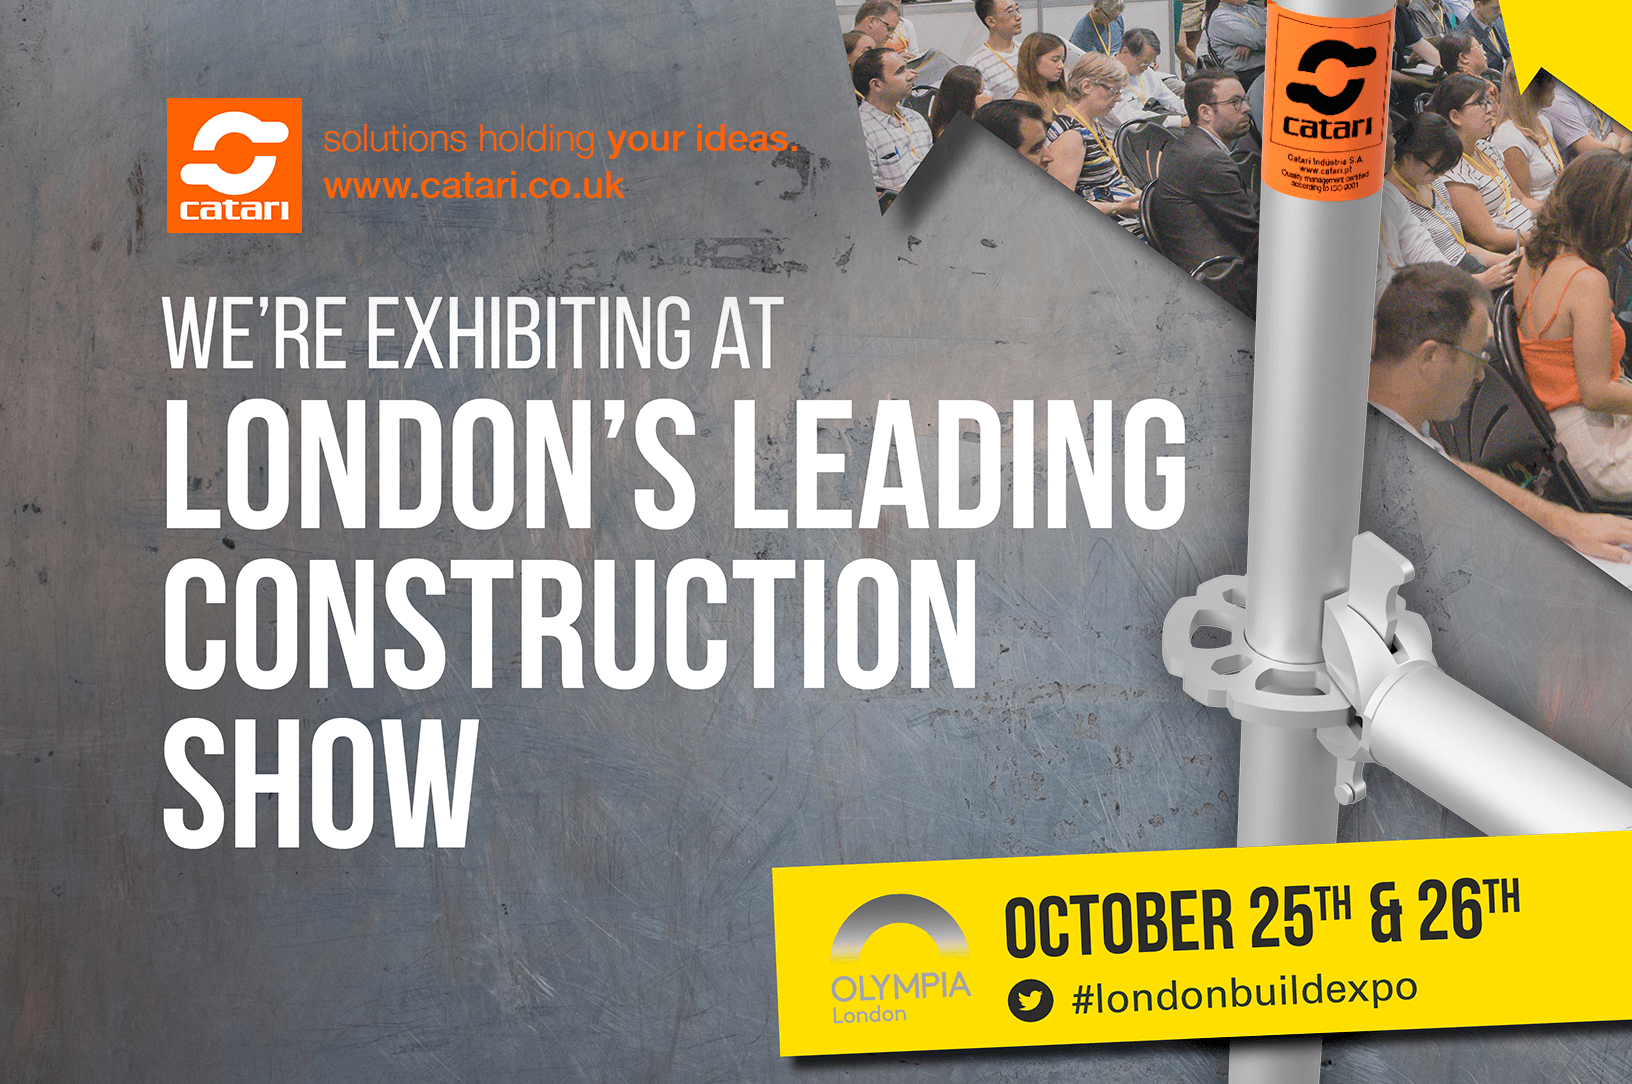 Catari, andaime, london build 2017, feira de construction